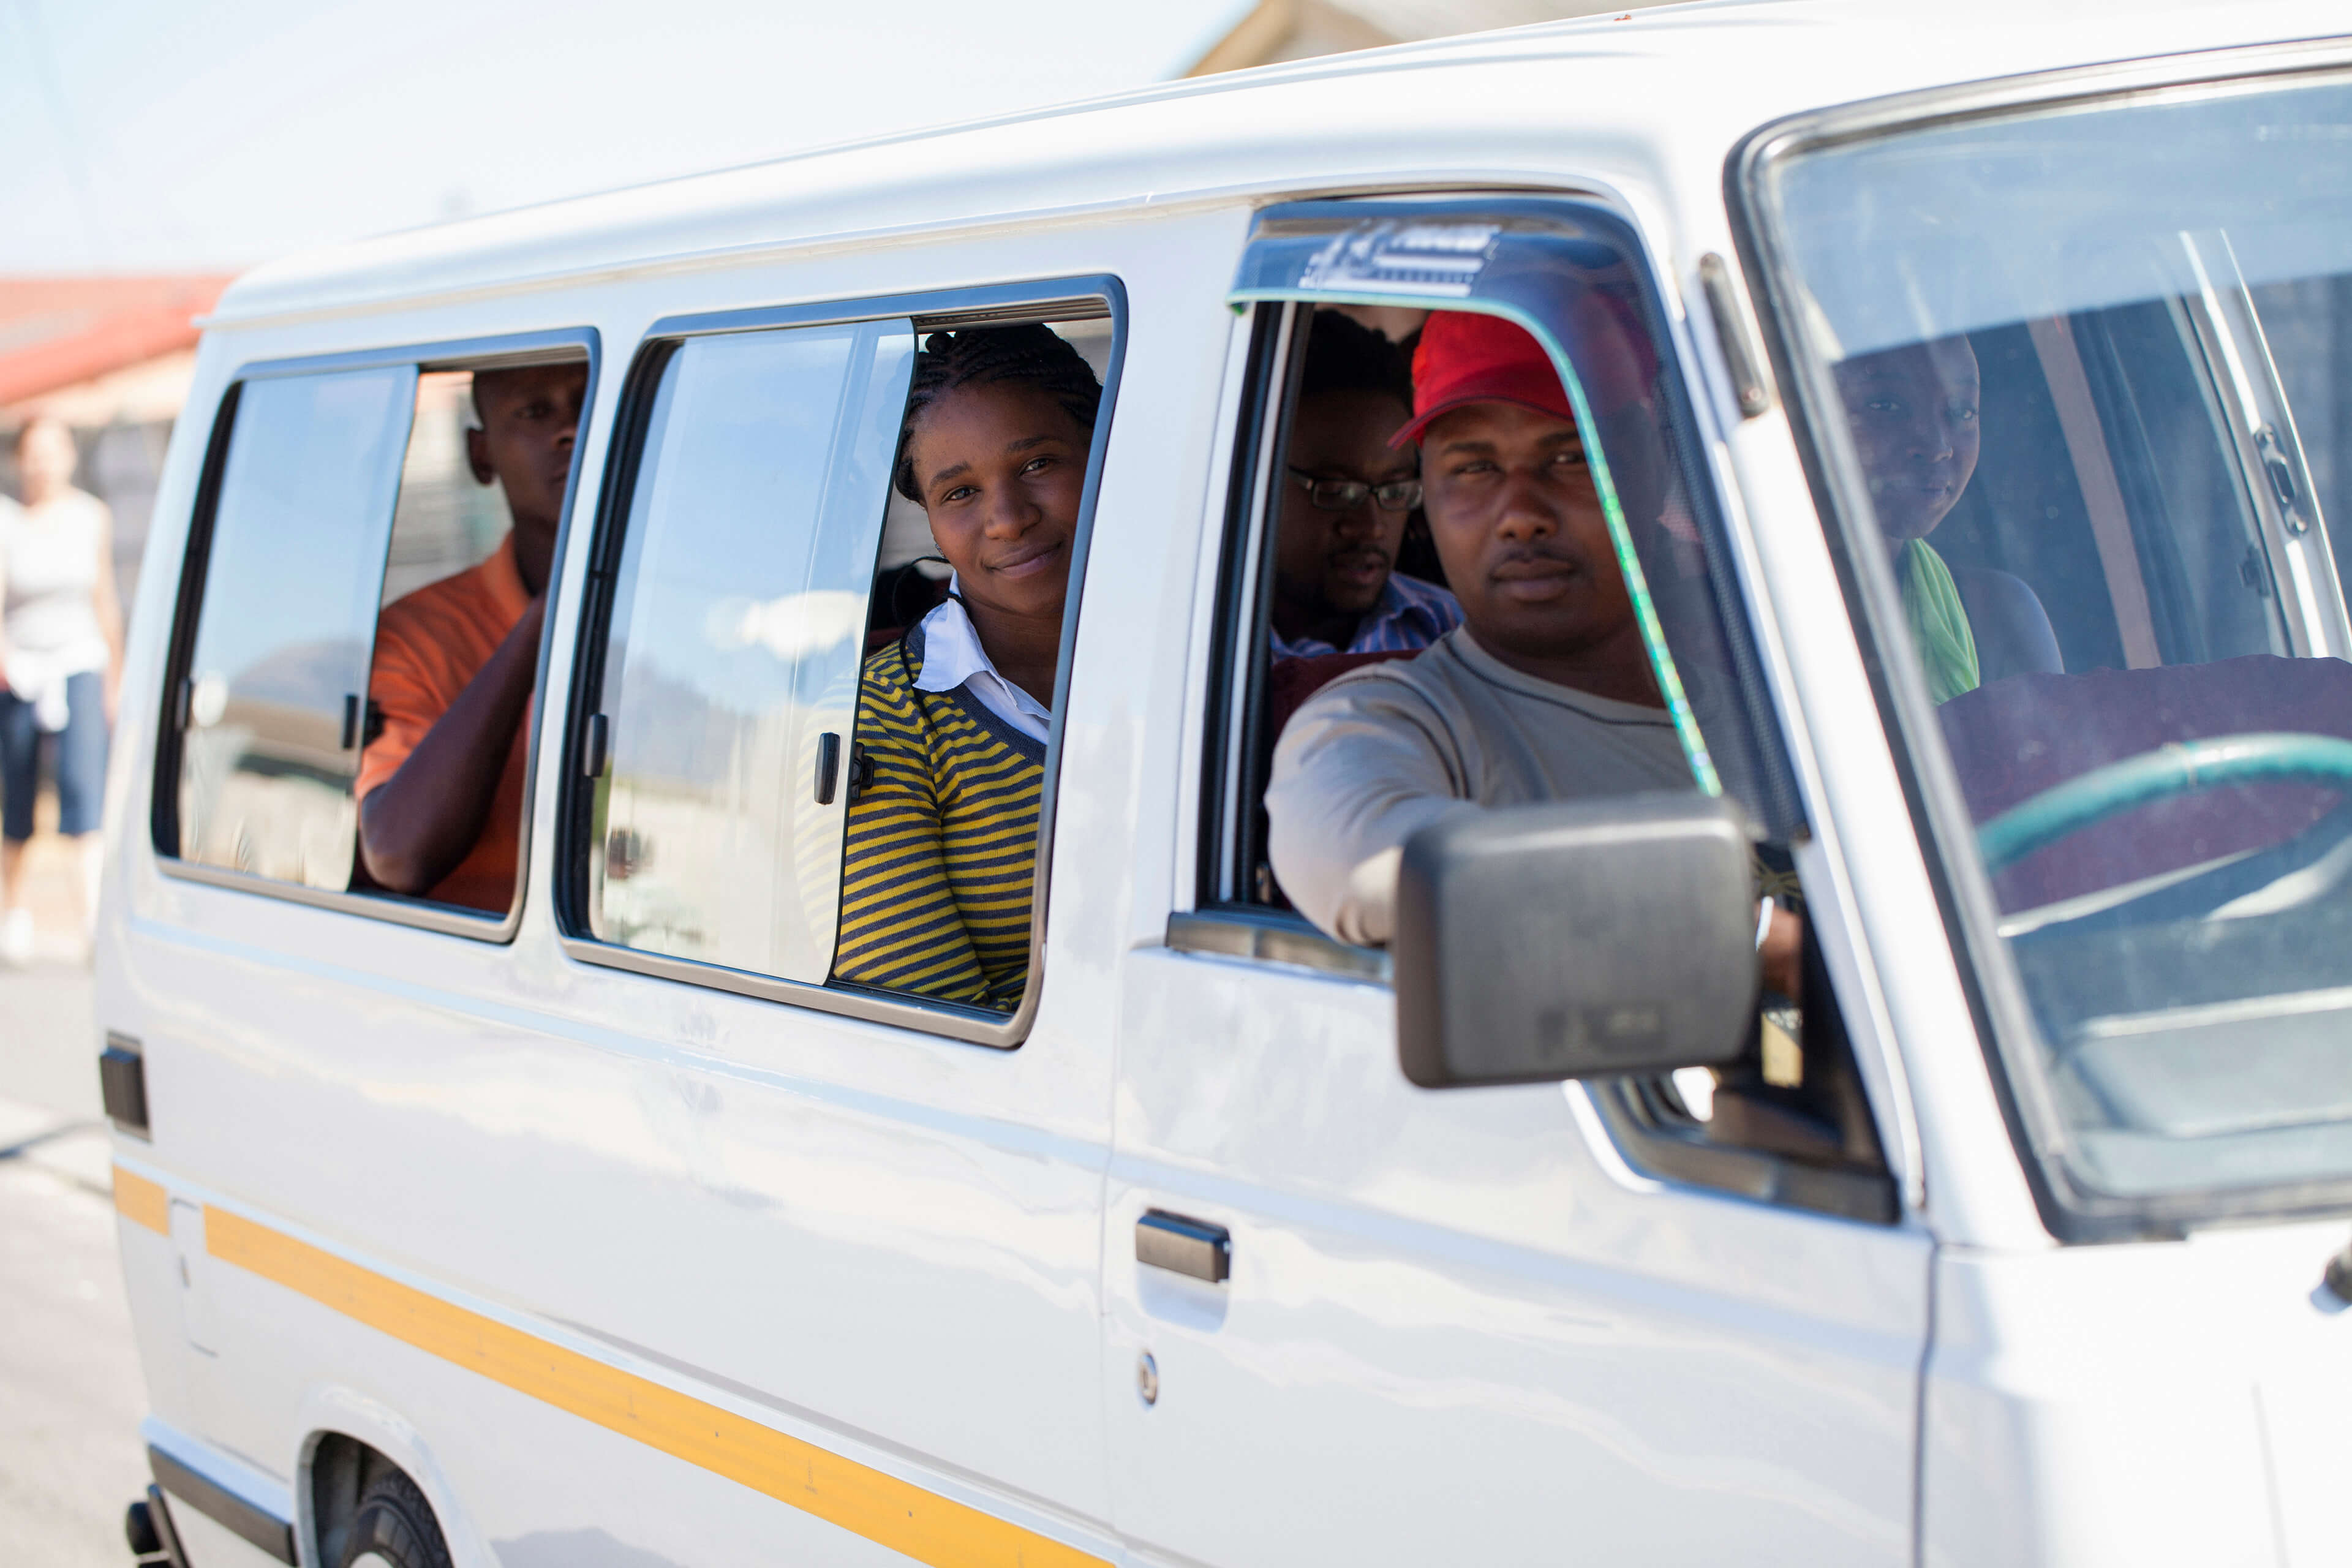 People getting a shared ride in a white van